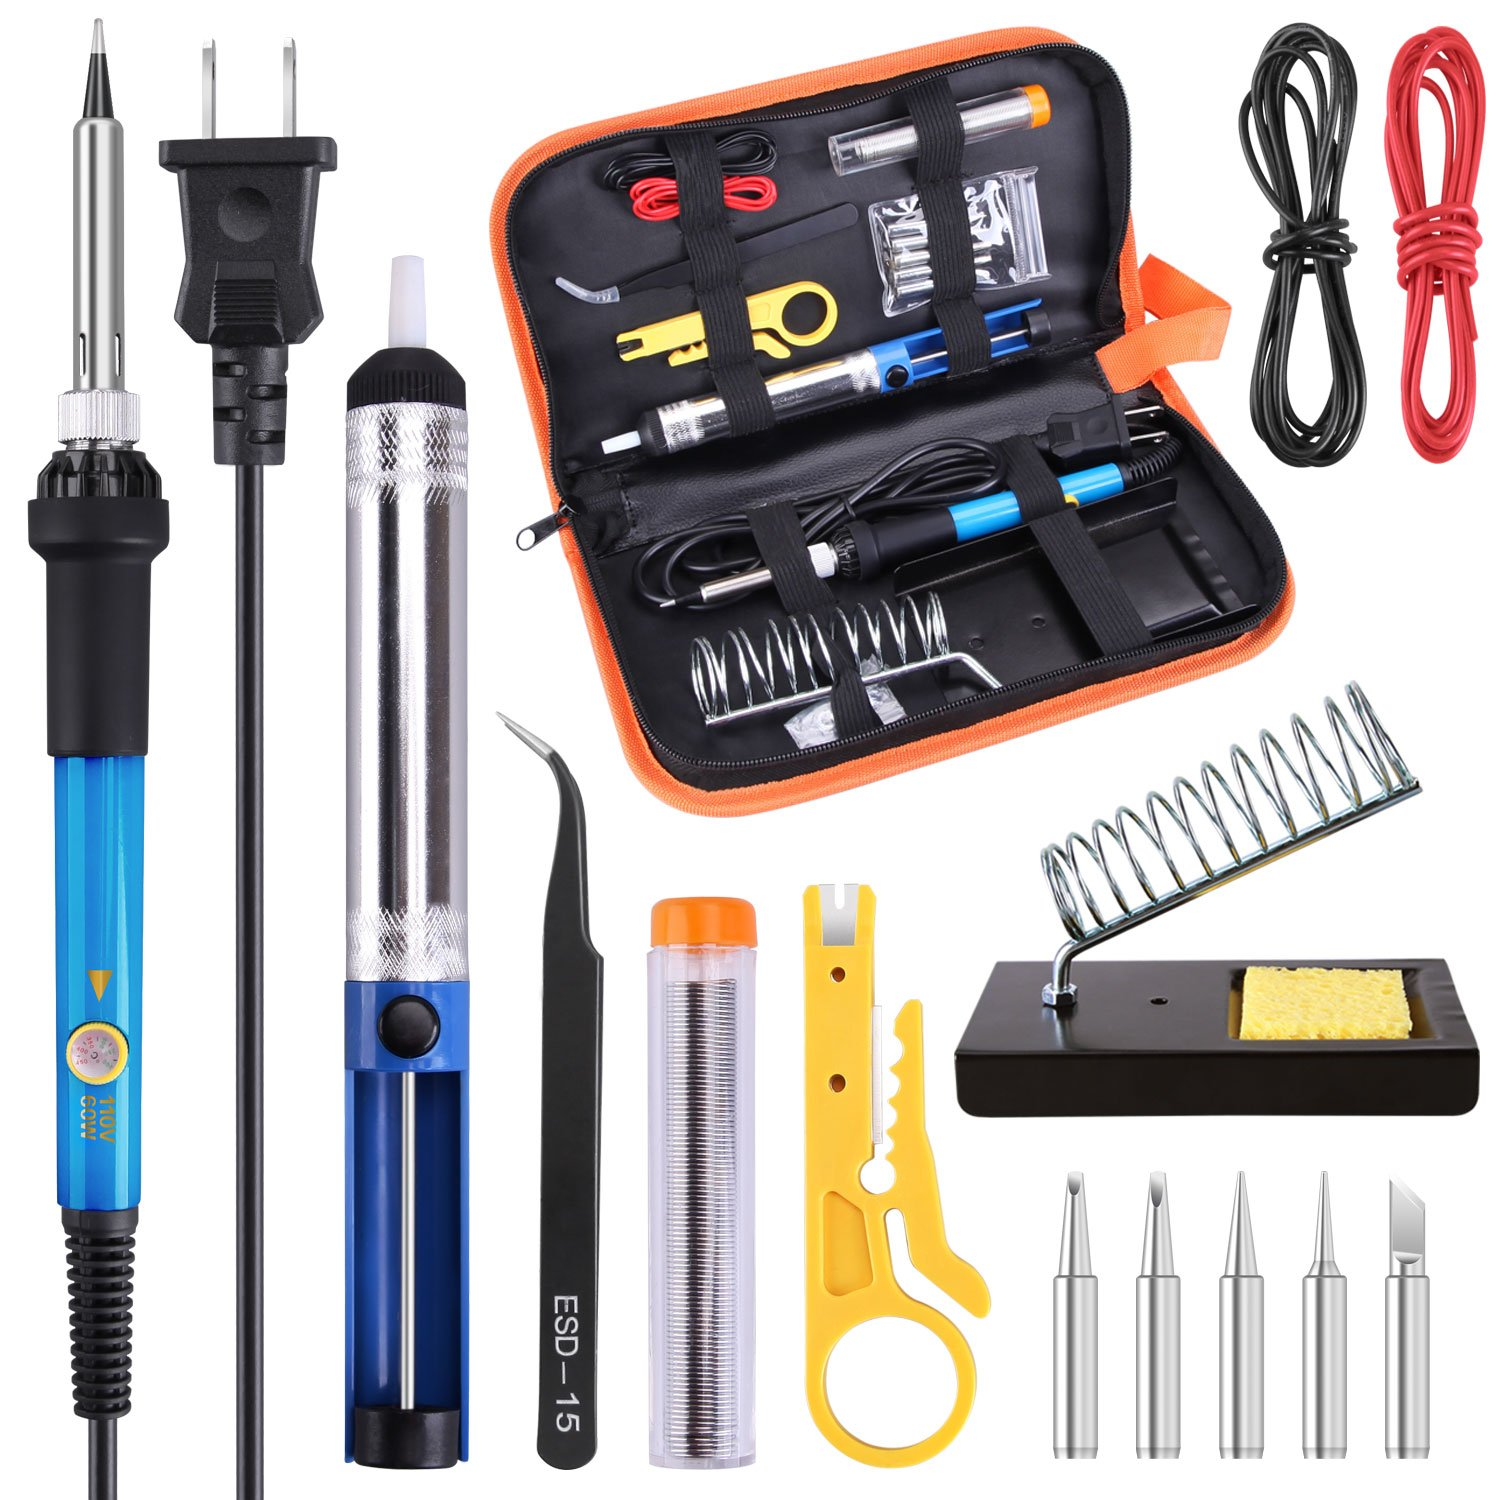 Tabiger Soldering Iron Kit 15-in-1, 60W 110 V Soldering Iron with